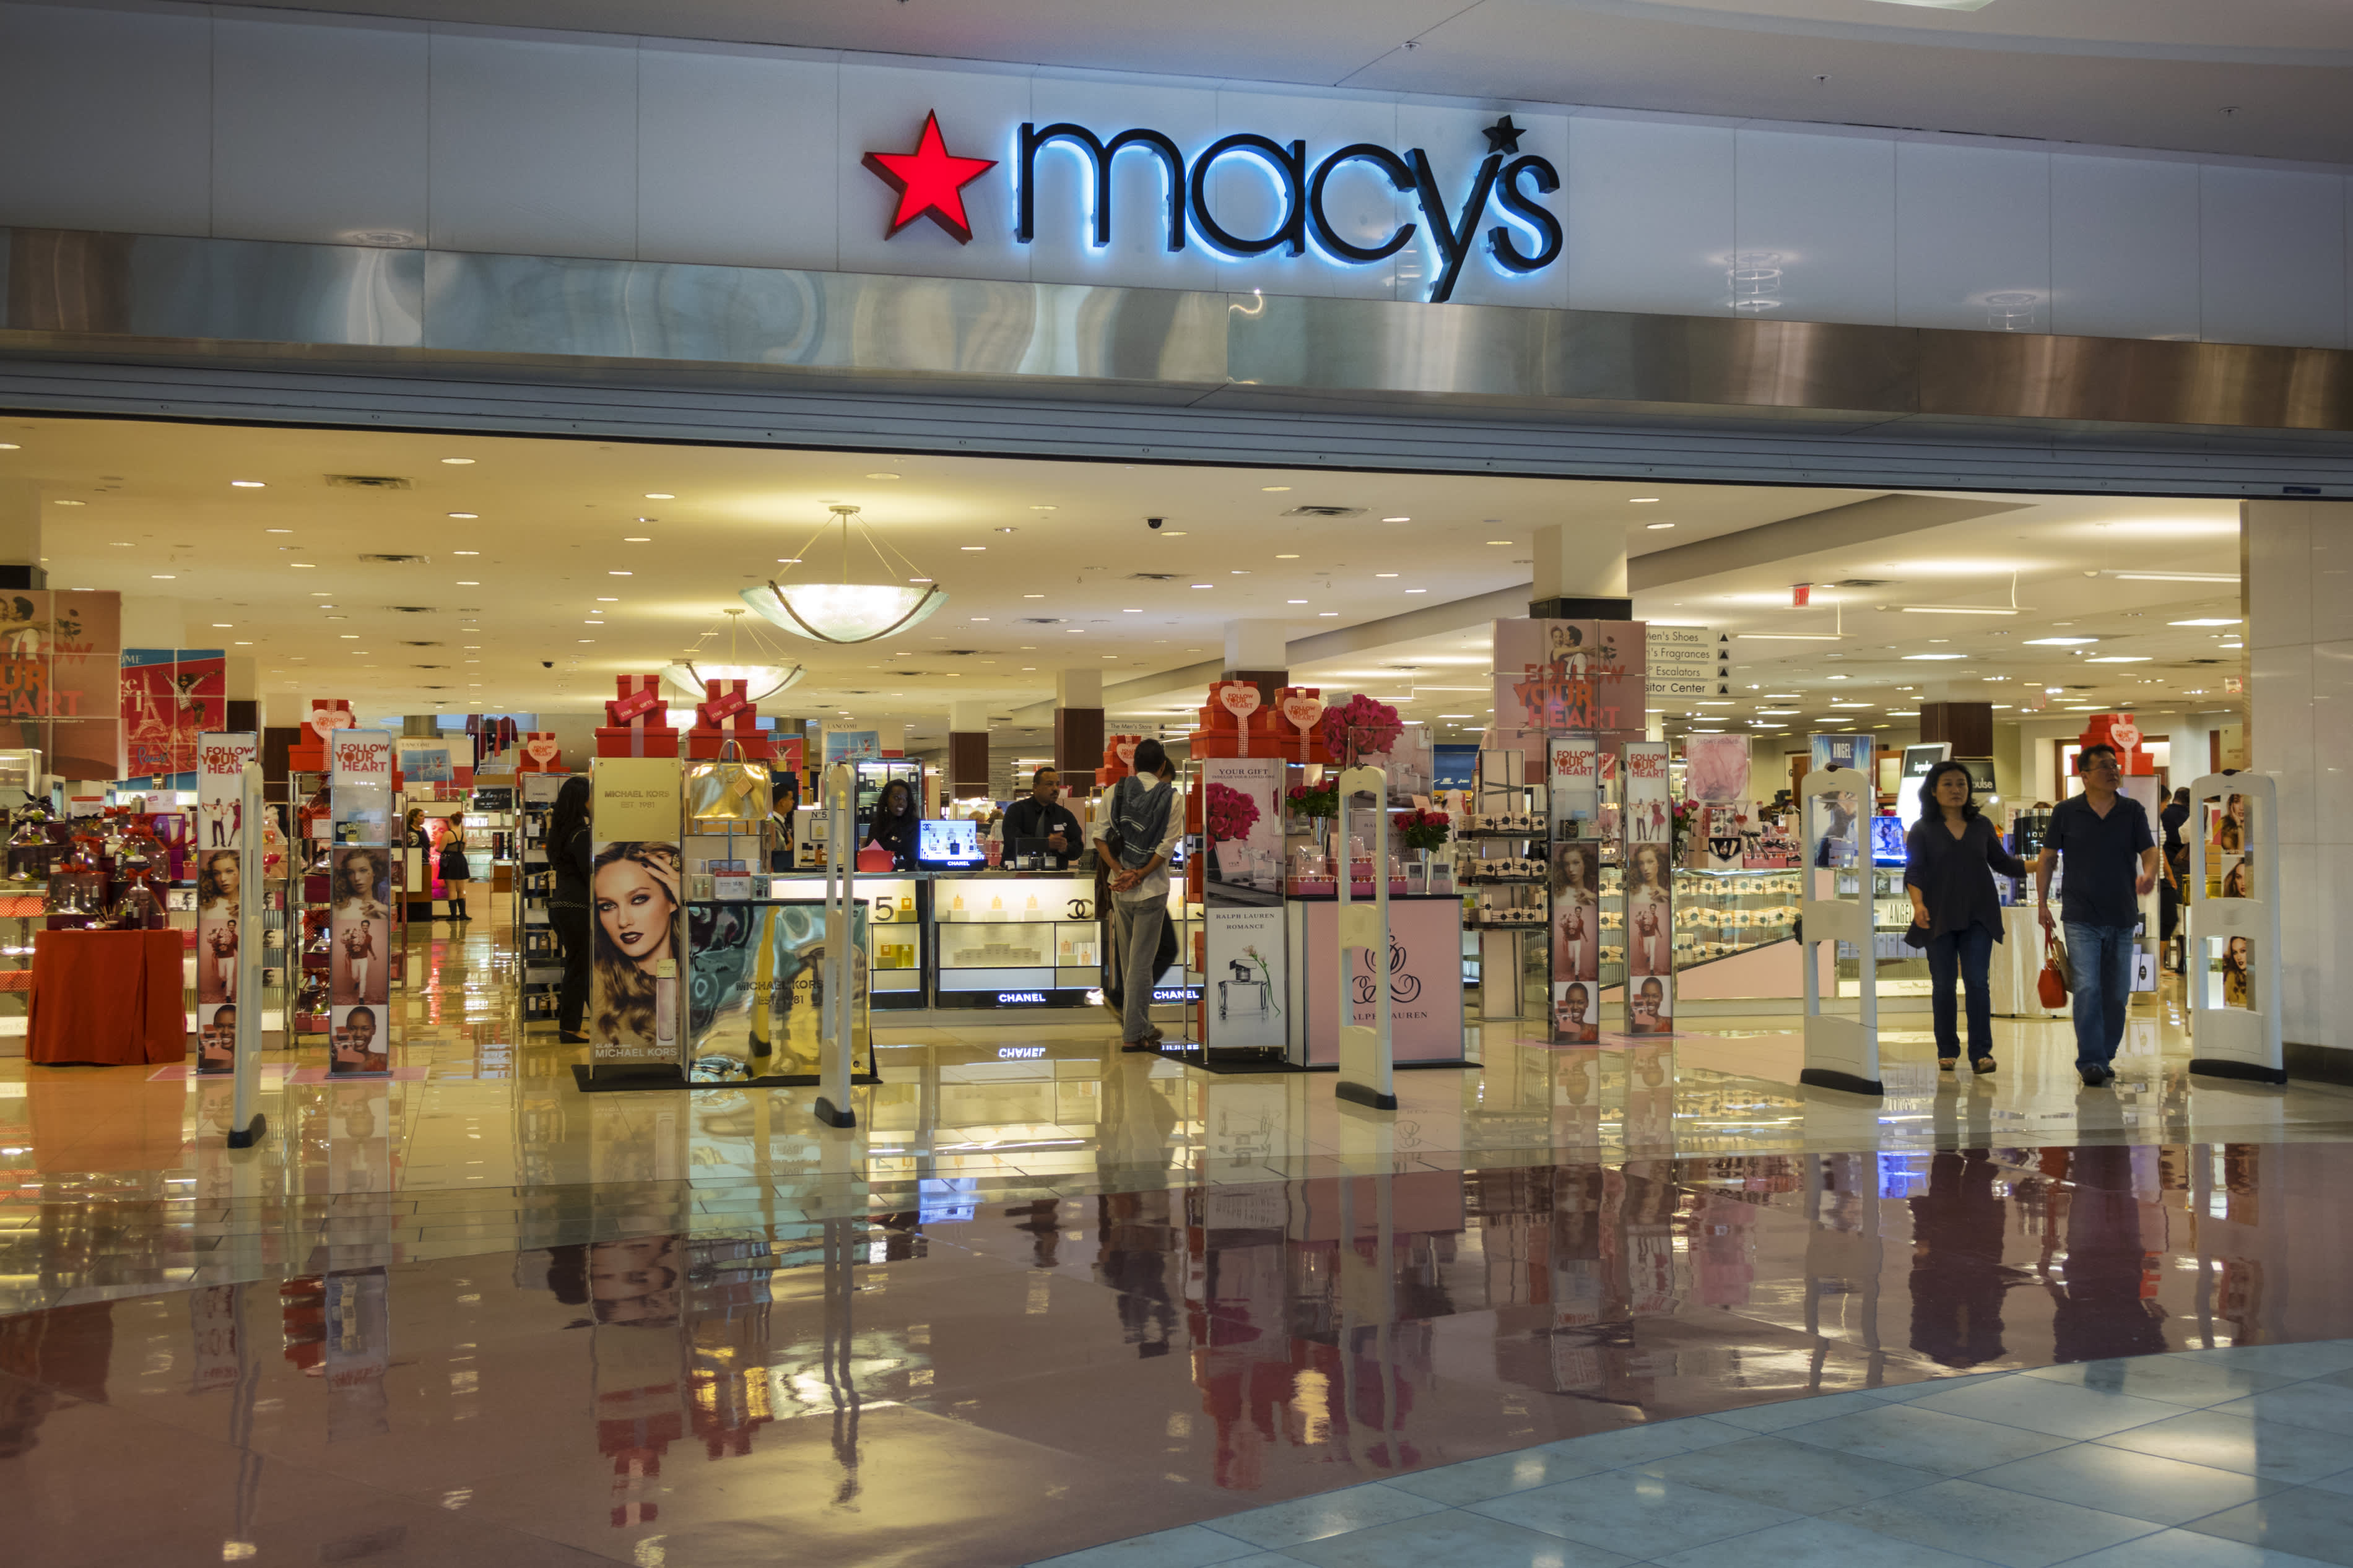 Macy's is shuttering 45 more locations this year as part of its 3-year store closure plan – CNBC